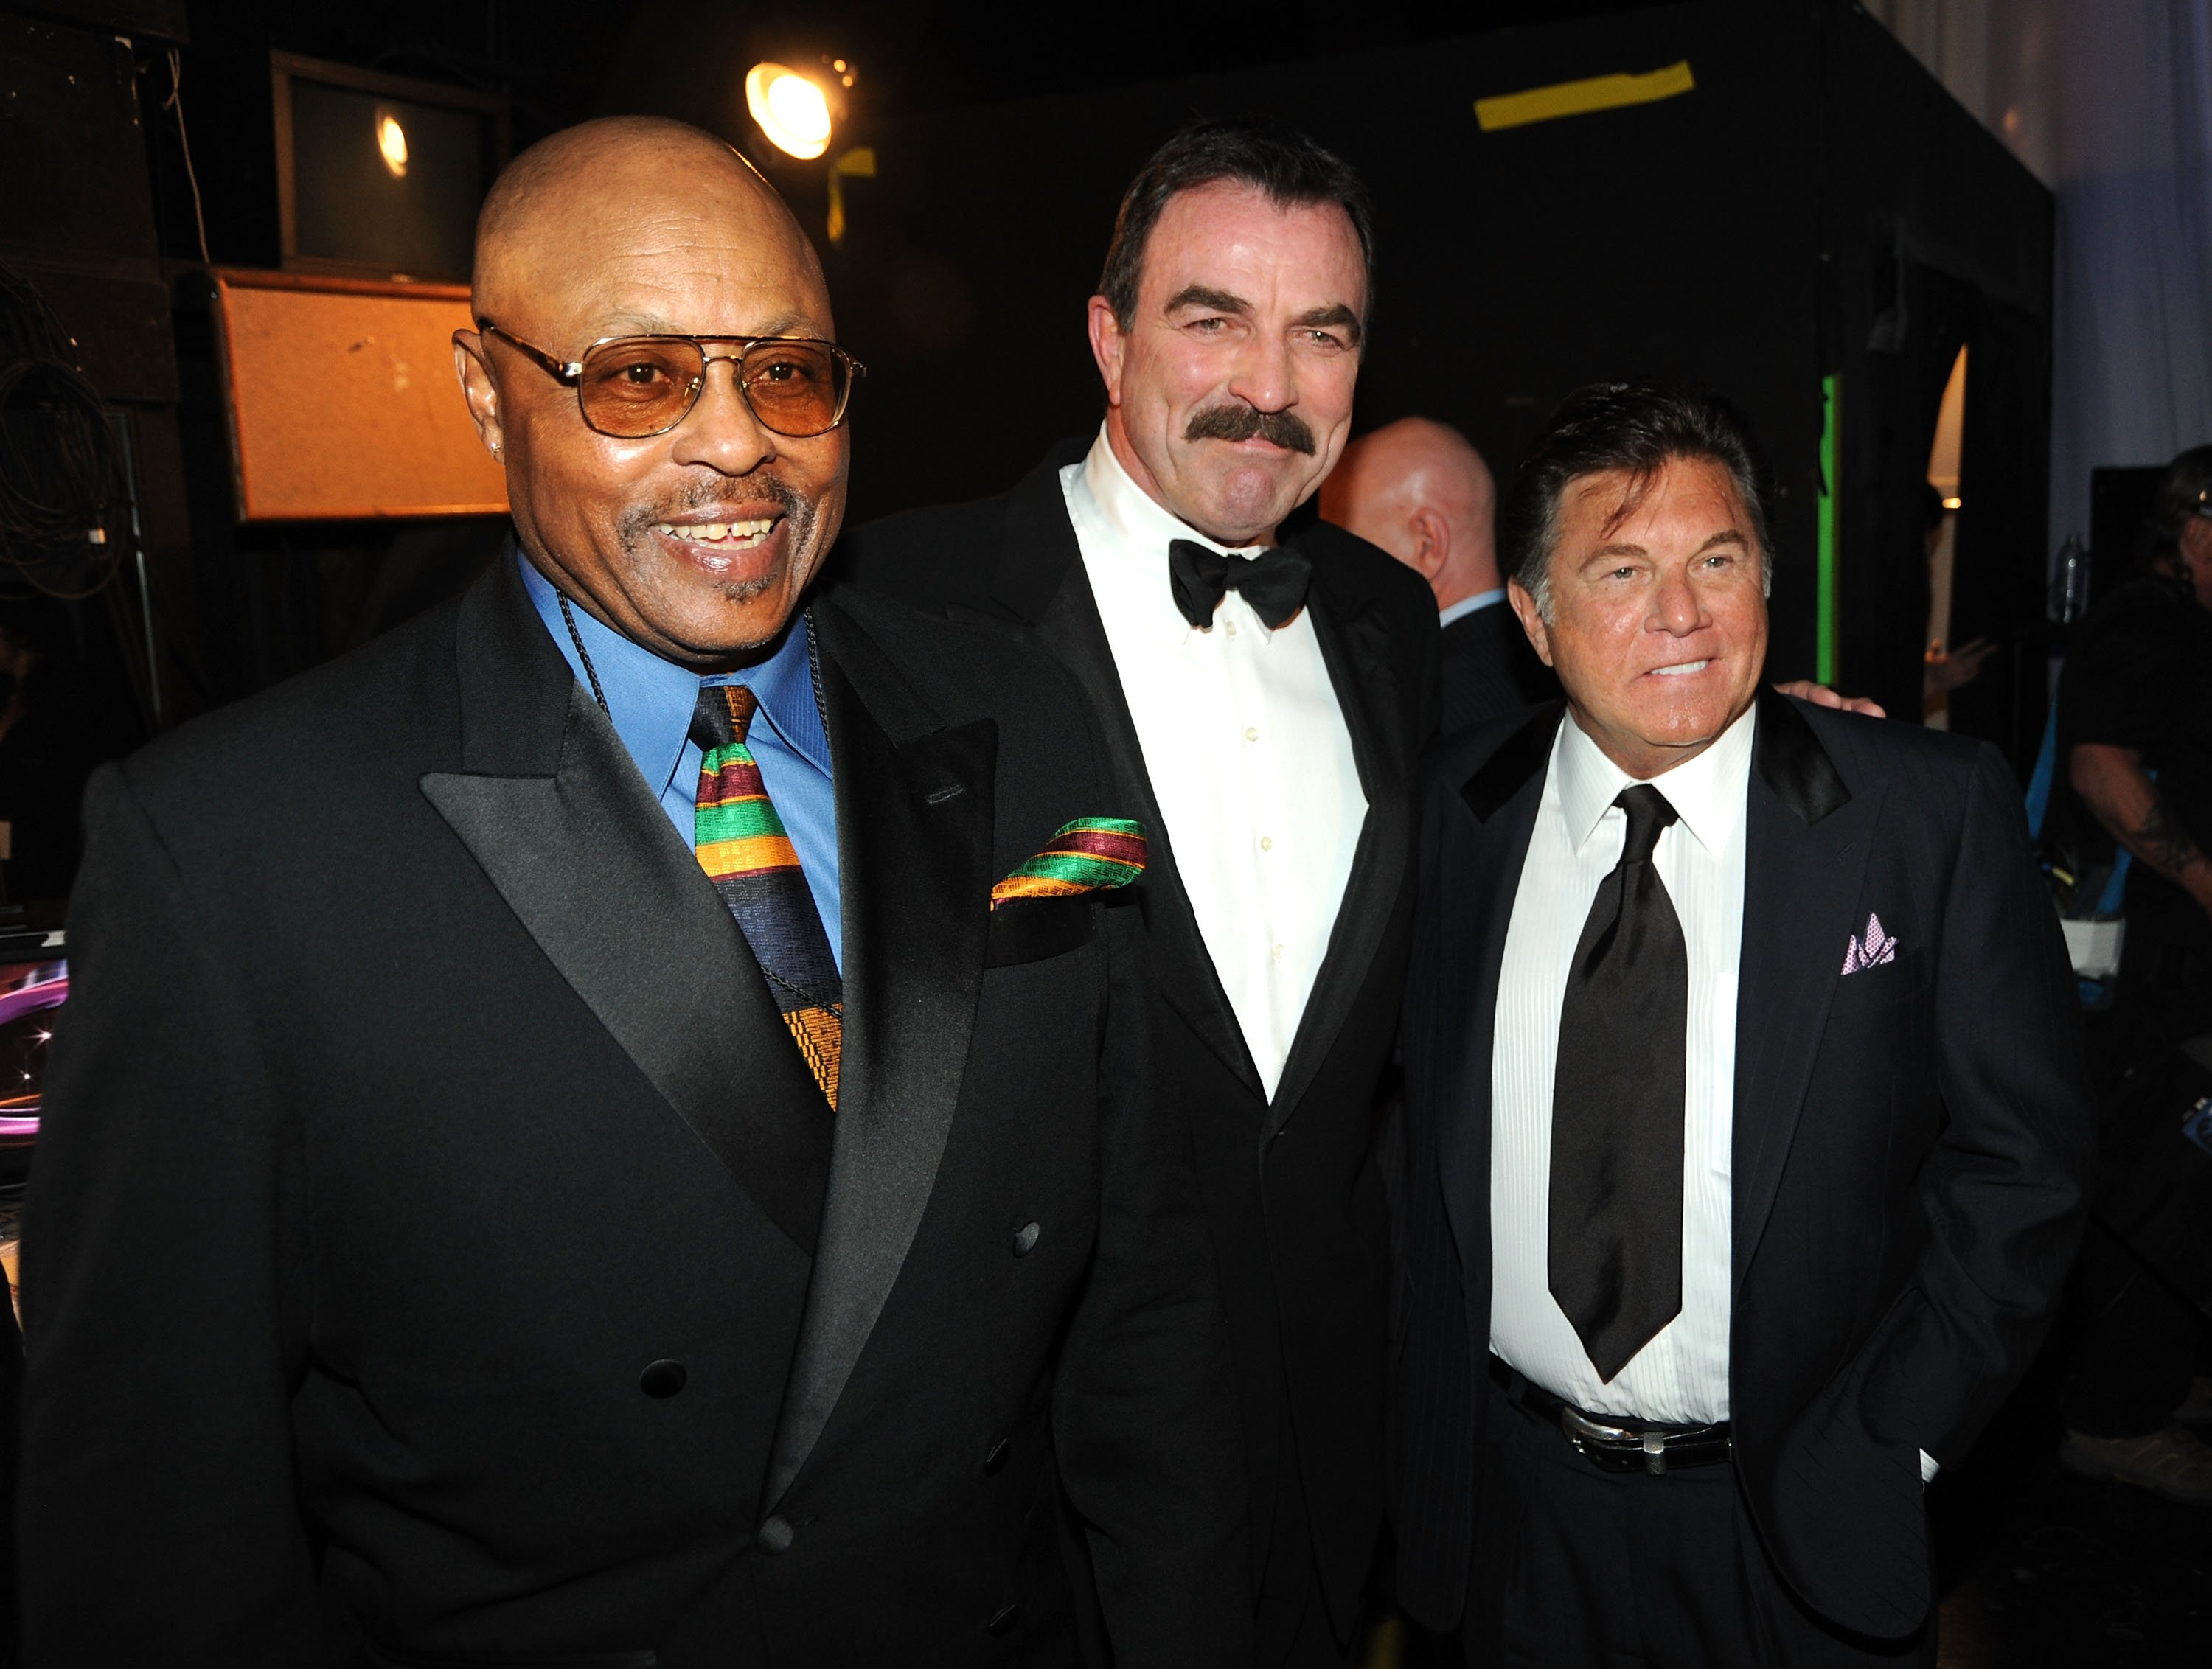 Roger E. Mosley, Tom Selleck, and Larry Manetti on April 19, 2009 in Universal City, California   Photo: Getty Images